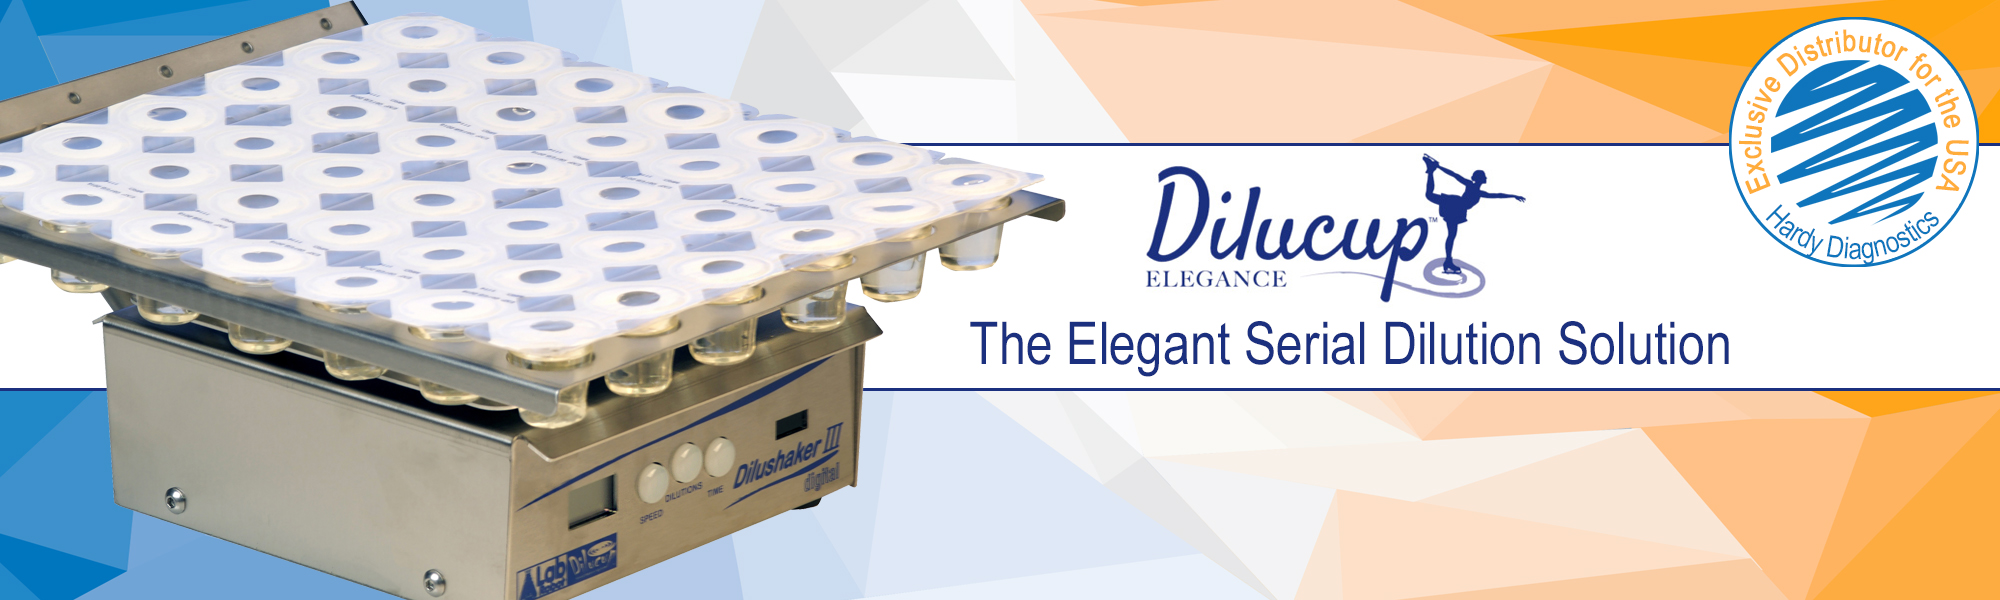 Dilucup header image